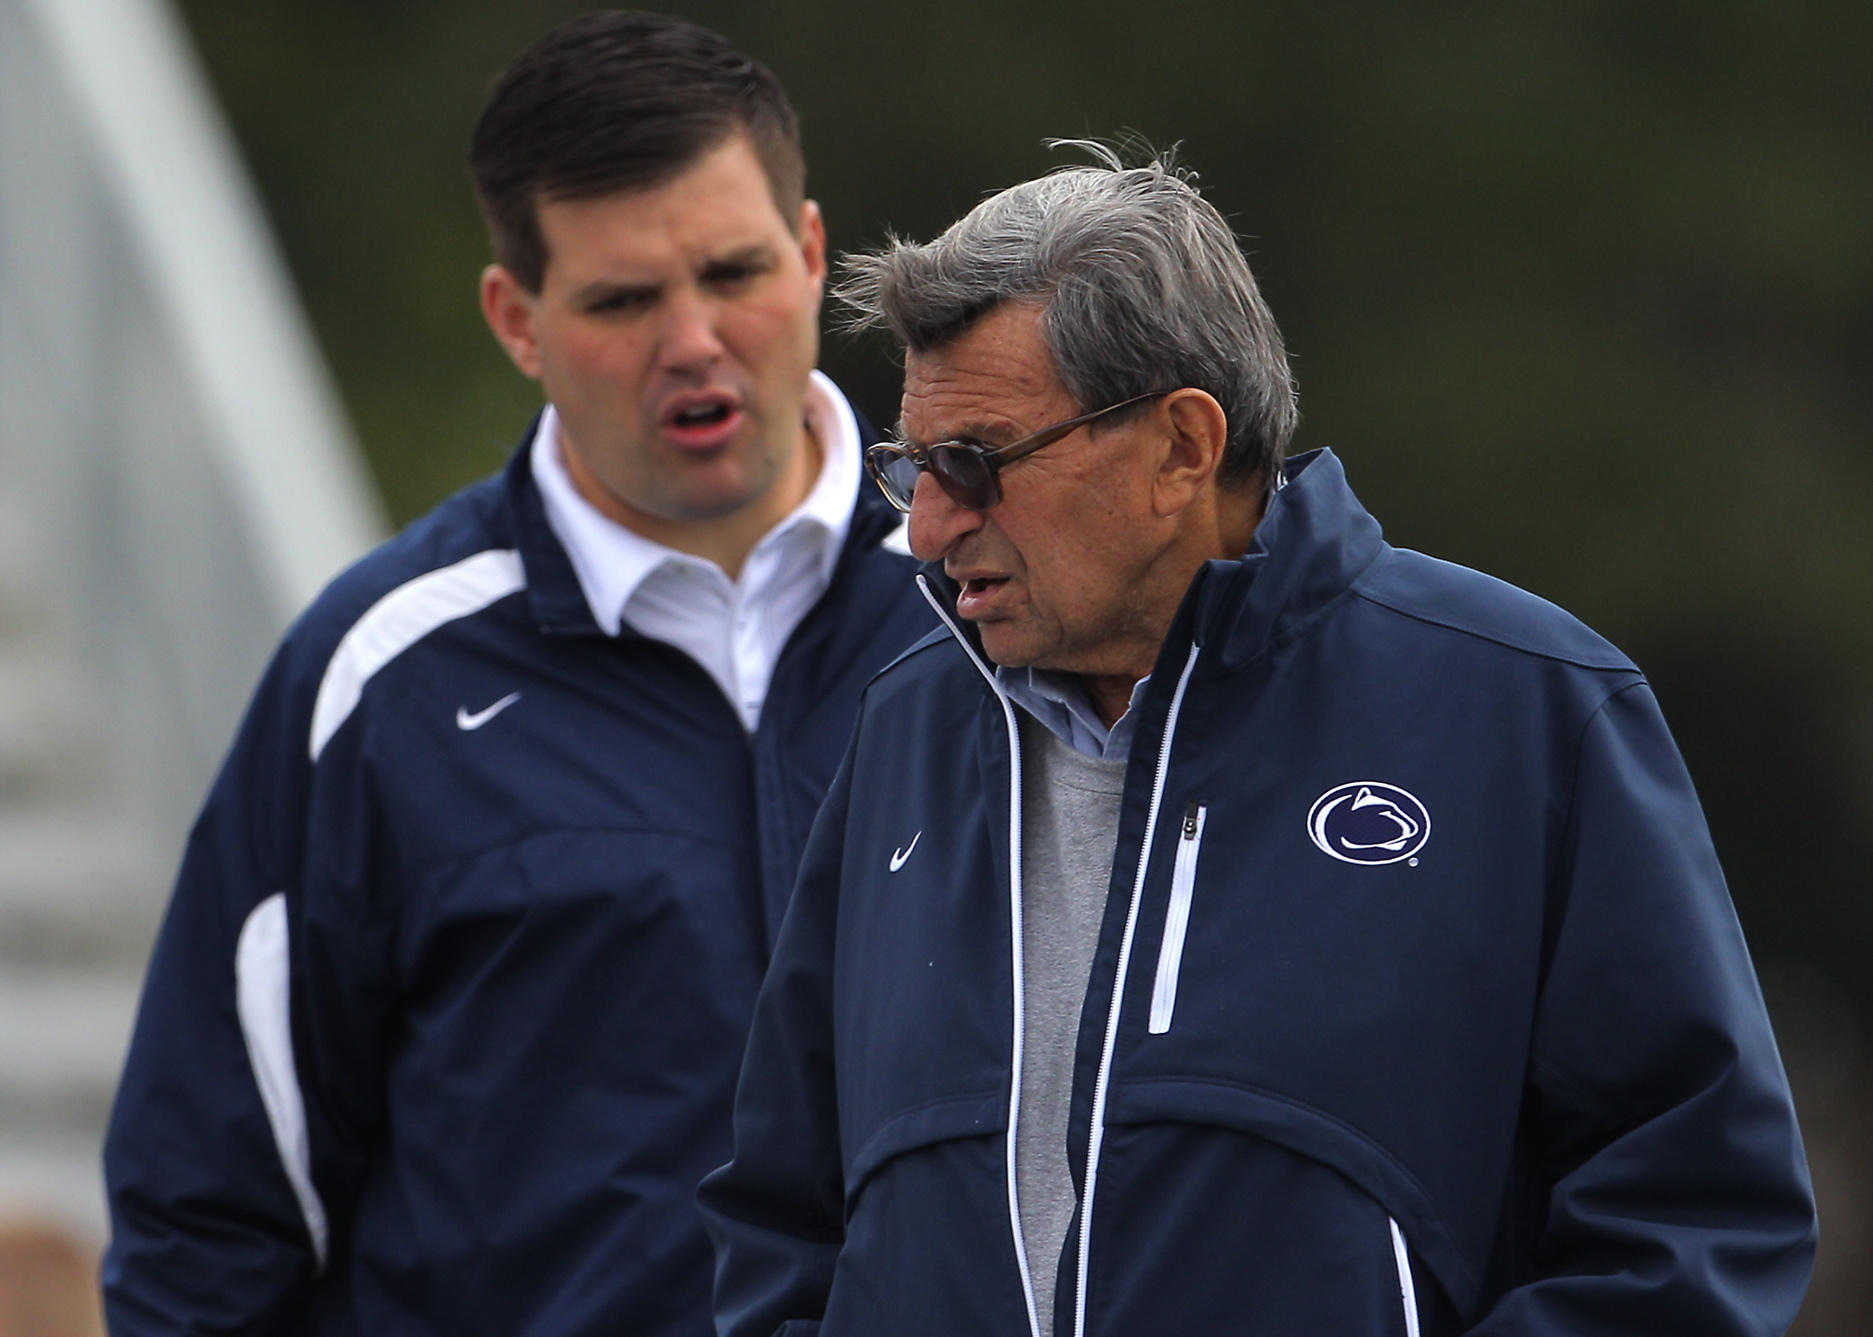 Jay Paterno: New book explains why so many missed signs of abuse by Sandusky ... and why Joe Paterno was blamed | Opinion